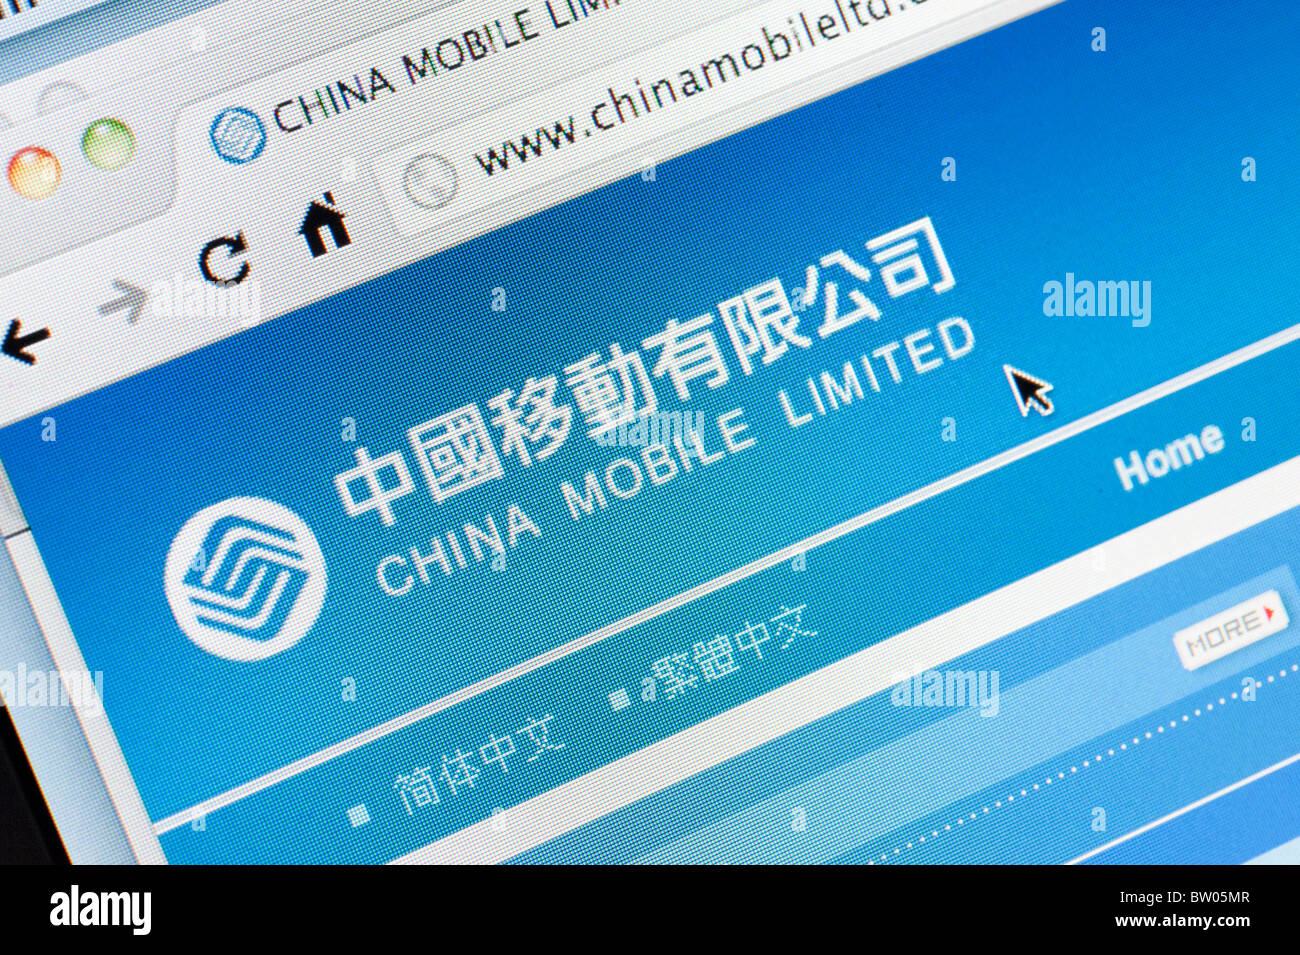 China Mobile Stock Photos & China Mobile Stock Images - Alamy